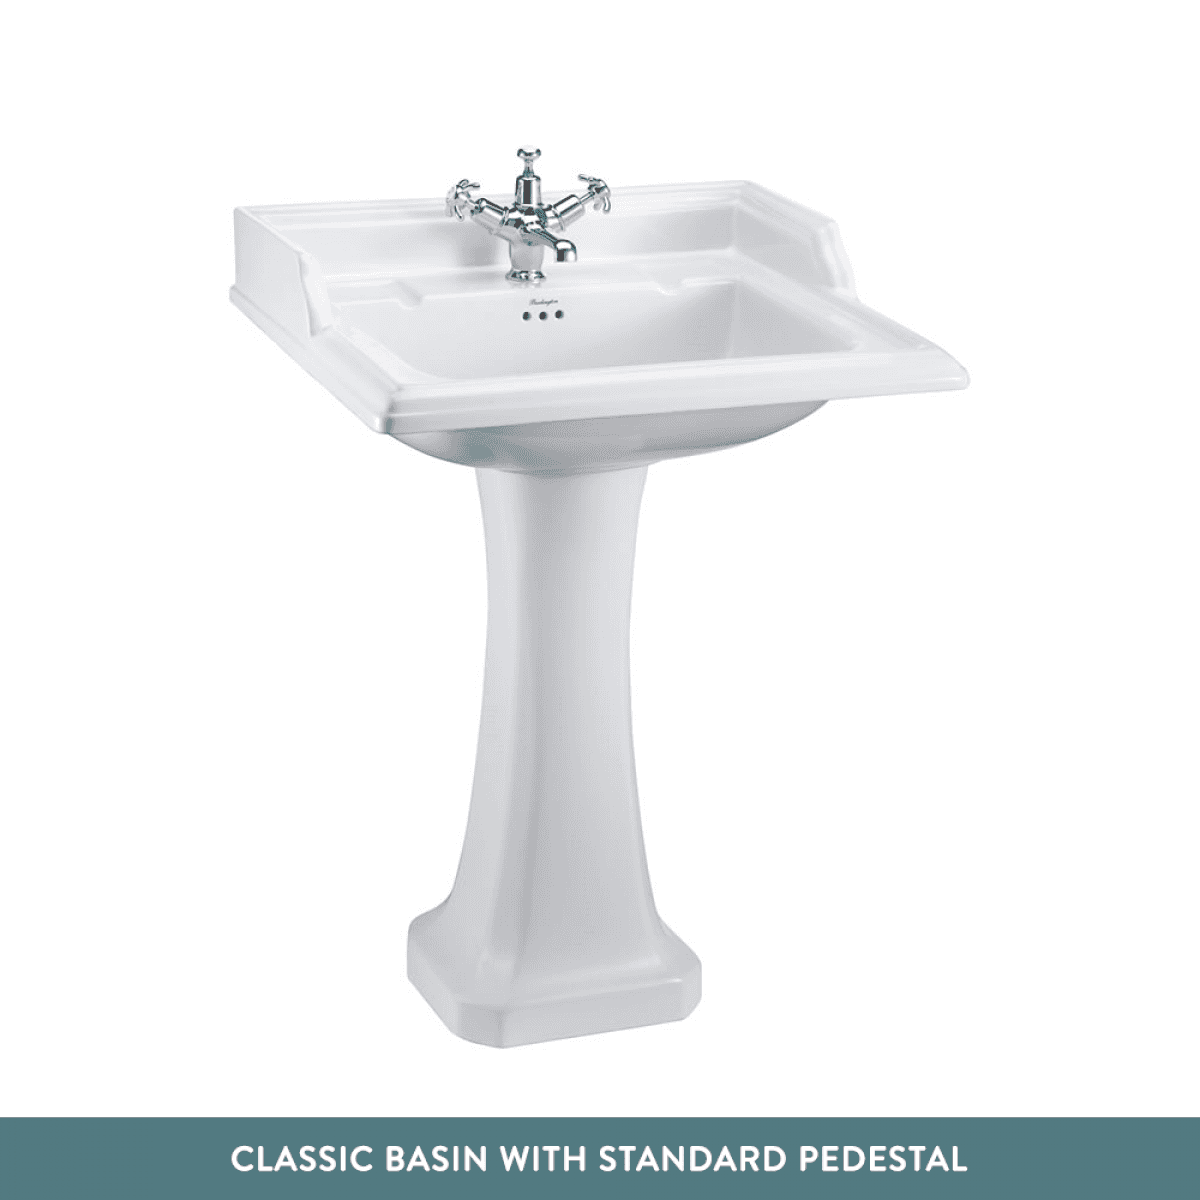 BURLINGTON CLASSIC RECTANGULAR BASIN WITH PEDESTAL